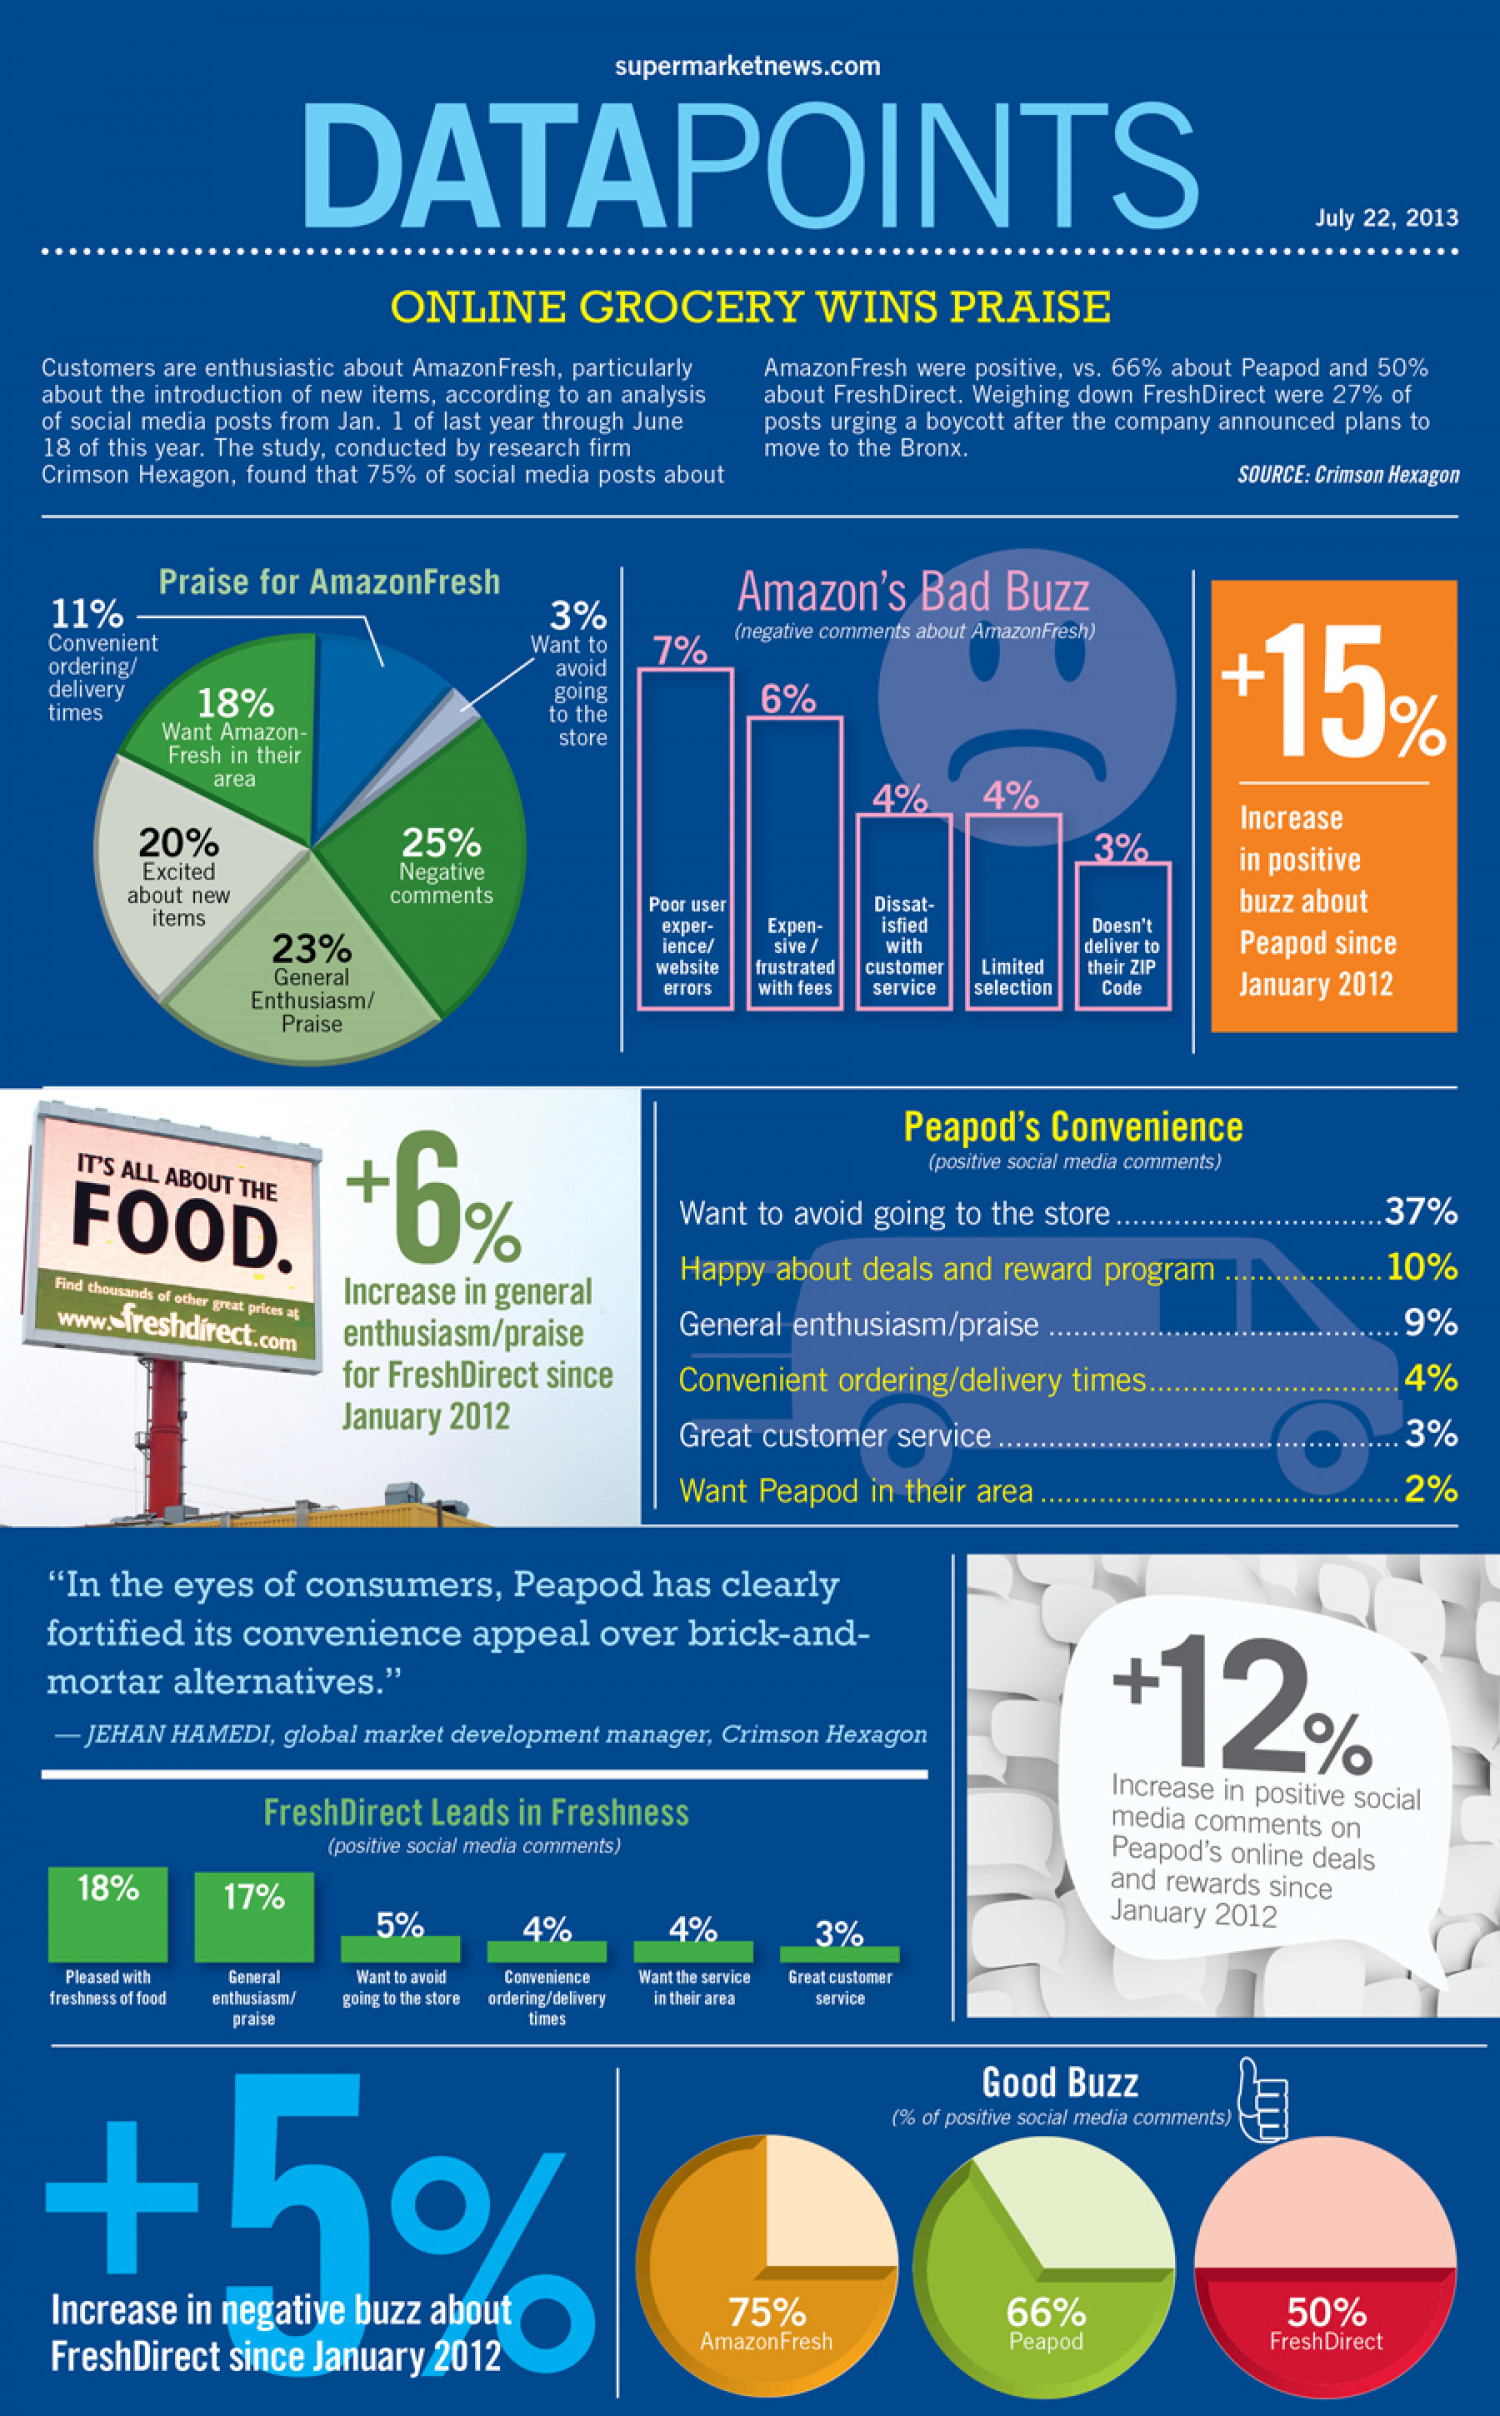 Amazon - Online Grocery Wins Praise Infographic